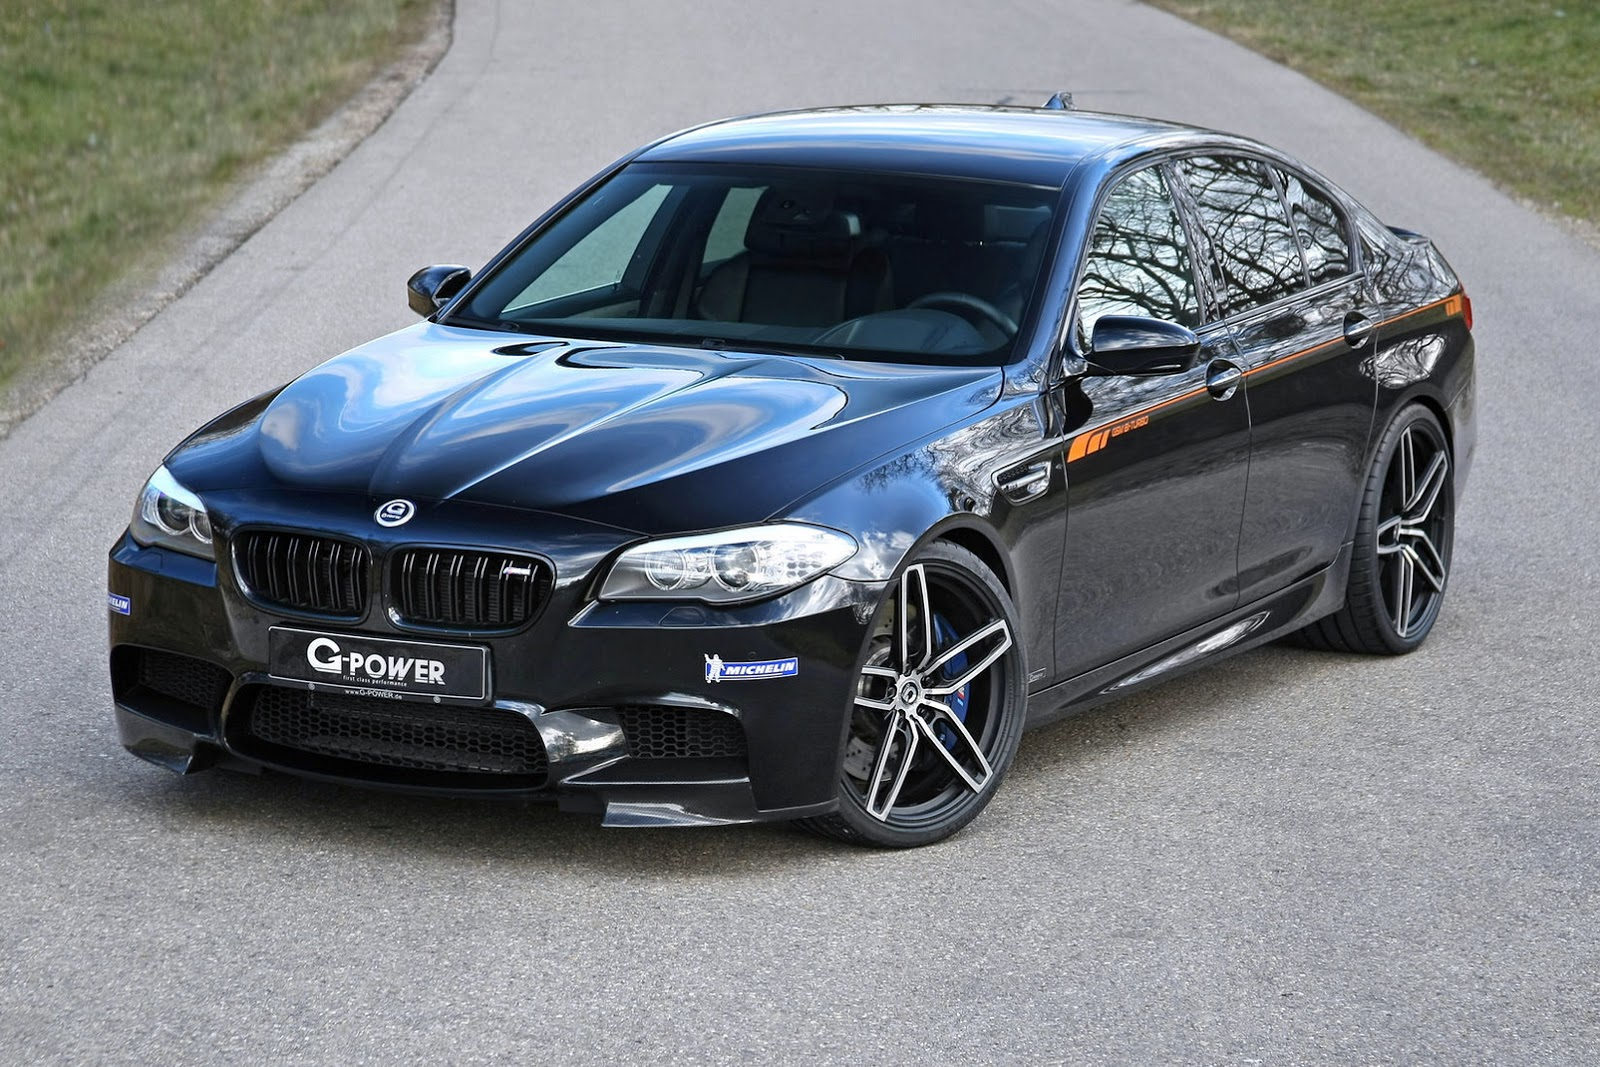 g power kit boosts bmw m5 f10 to 975nm performancedrive. Black Bedroom Furniture Sets. Home Design Ideas